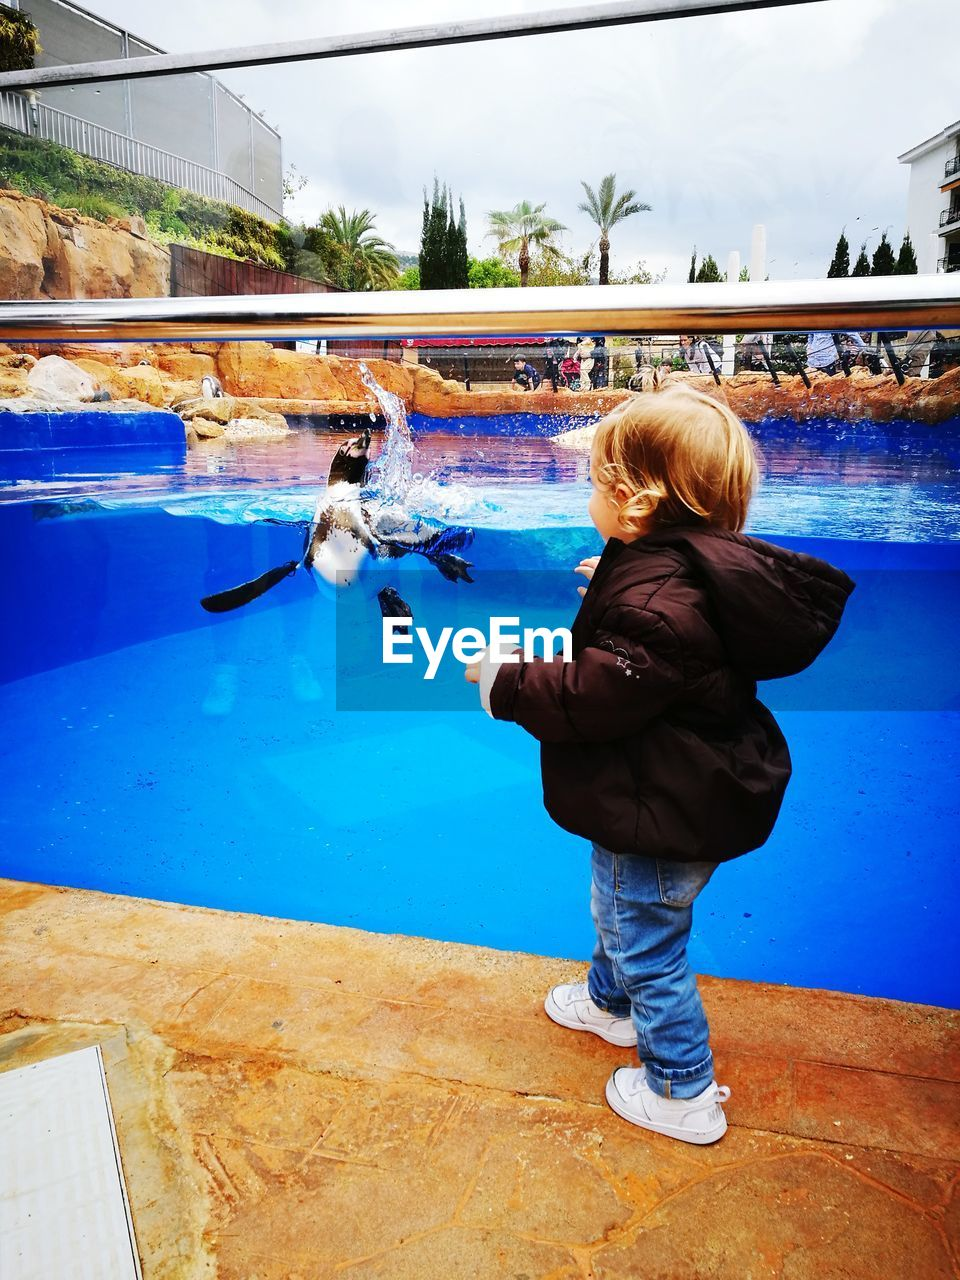 real people, child, lifestyles, full length, childhood, one person, girls, women, leisure activity, females, rear view, pool, water, swimming pool, casual clothing, day, boys, outdoors, warm clothing, innocence